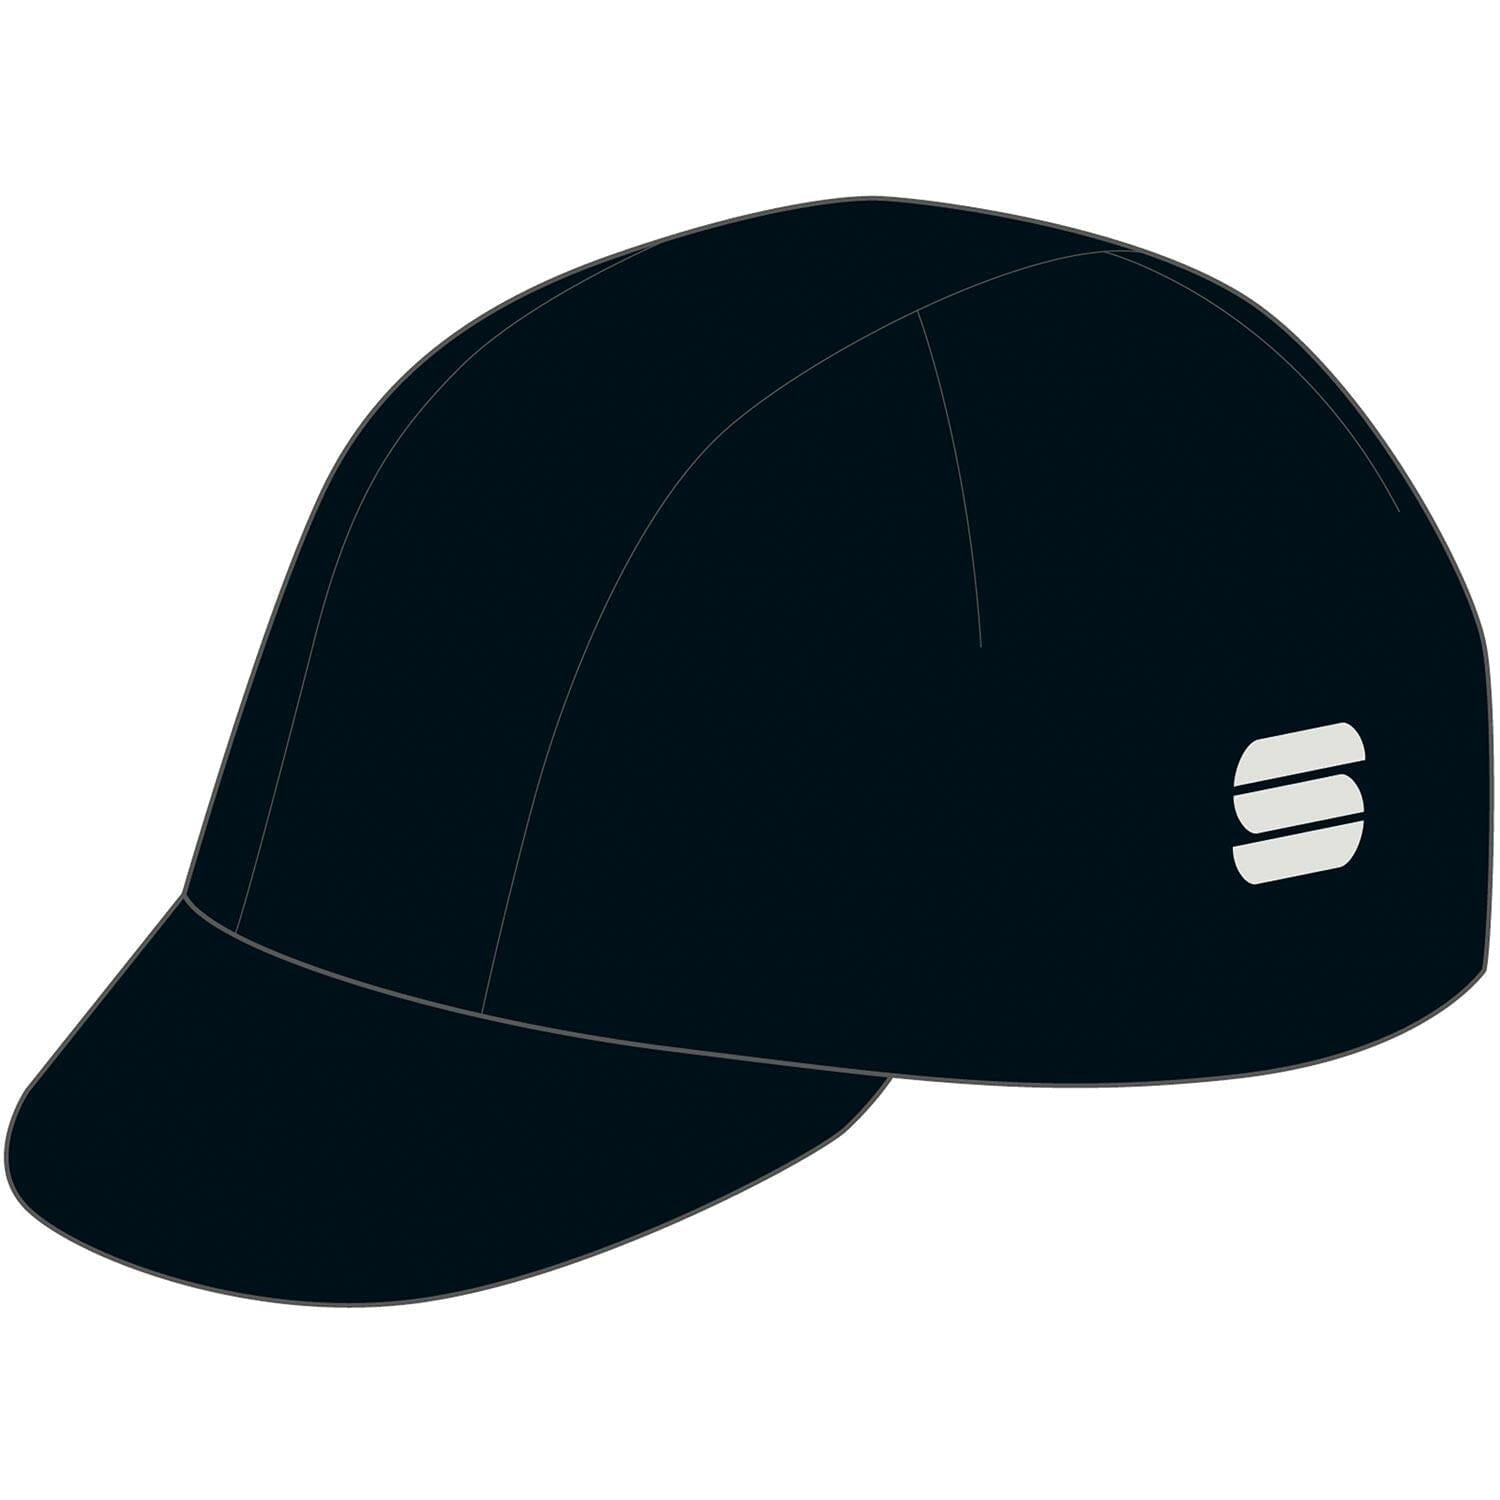 Sportful-Sportful Monocrom Cycling Cap-Anthracite-UNI-SF200491688-saddleback-elite-performance-cycling